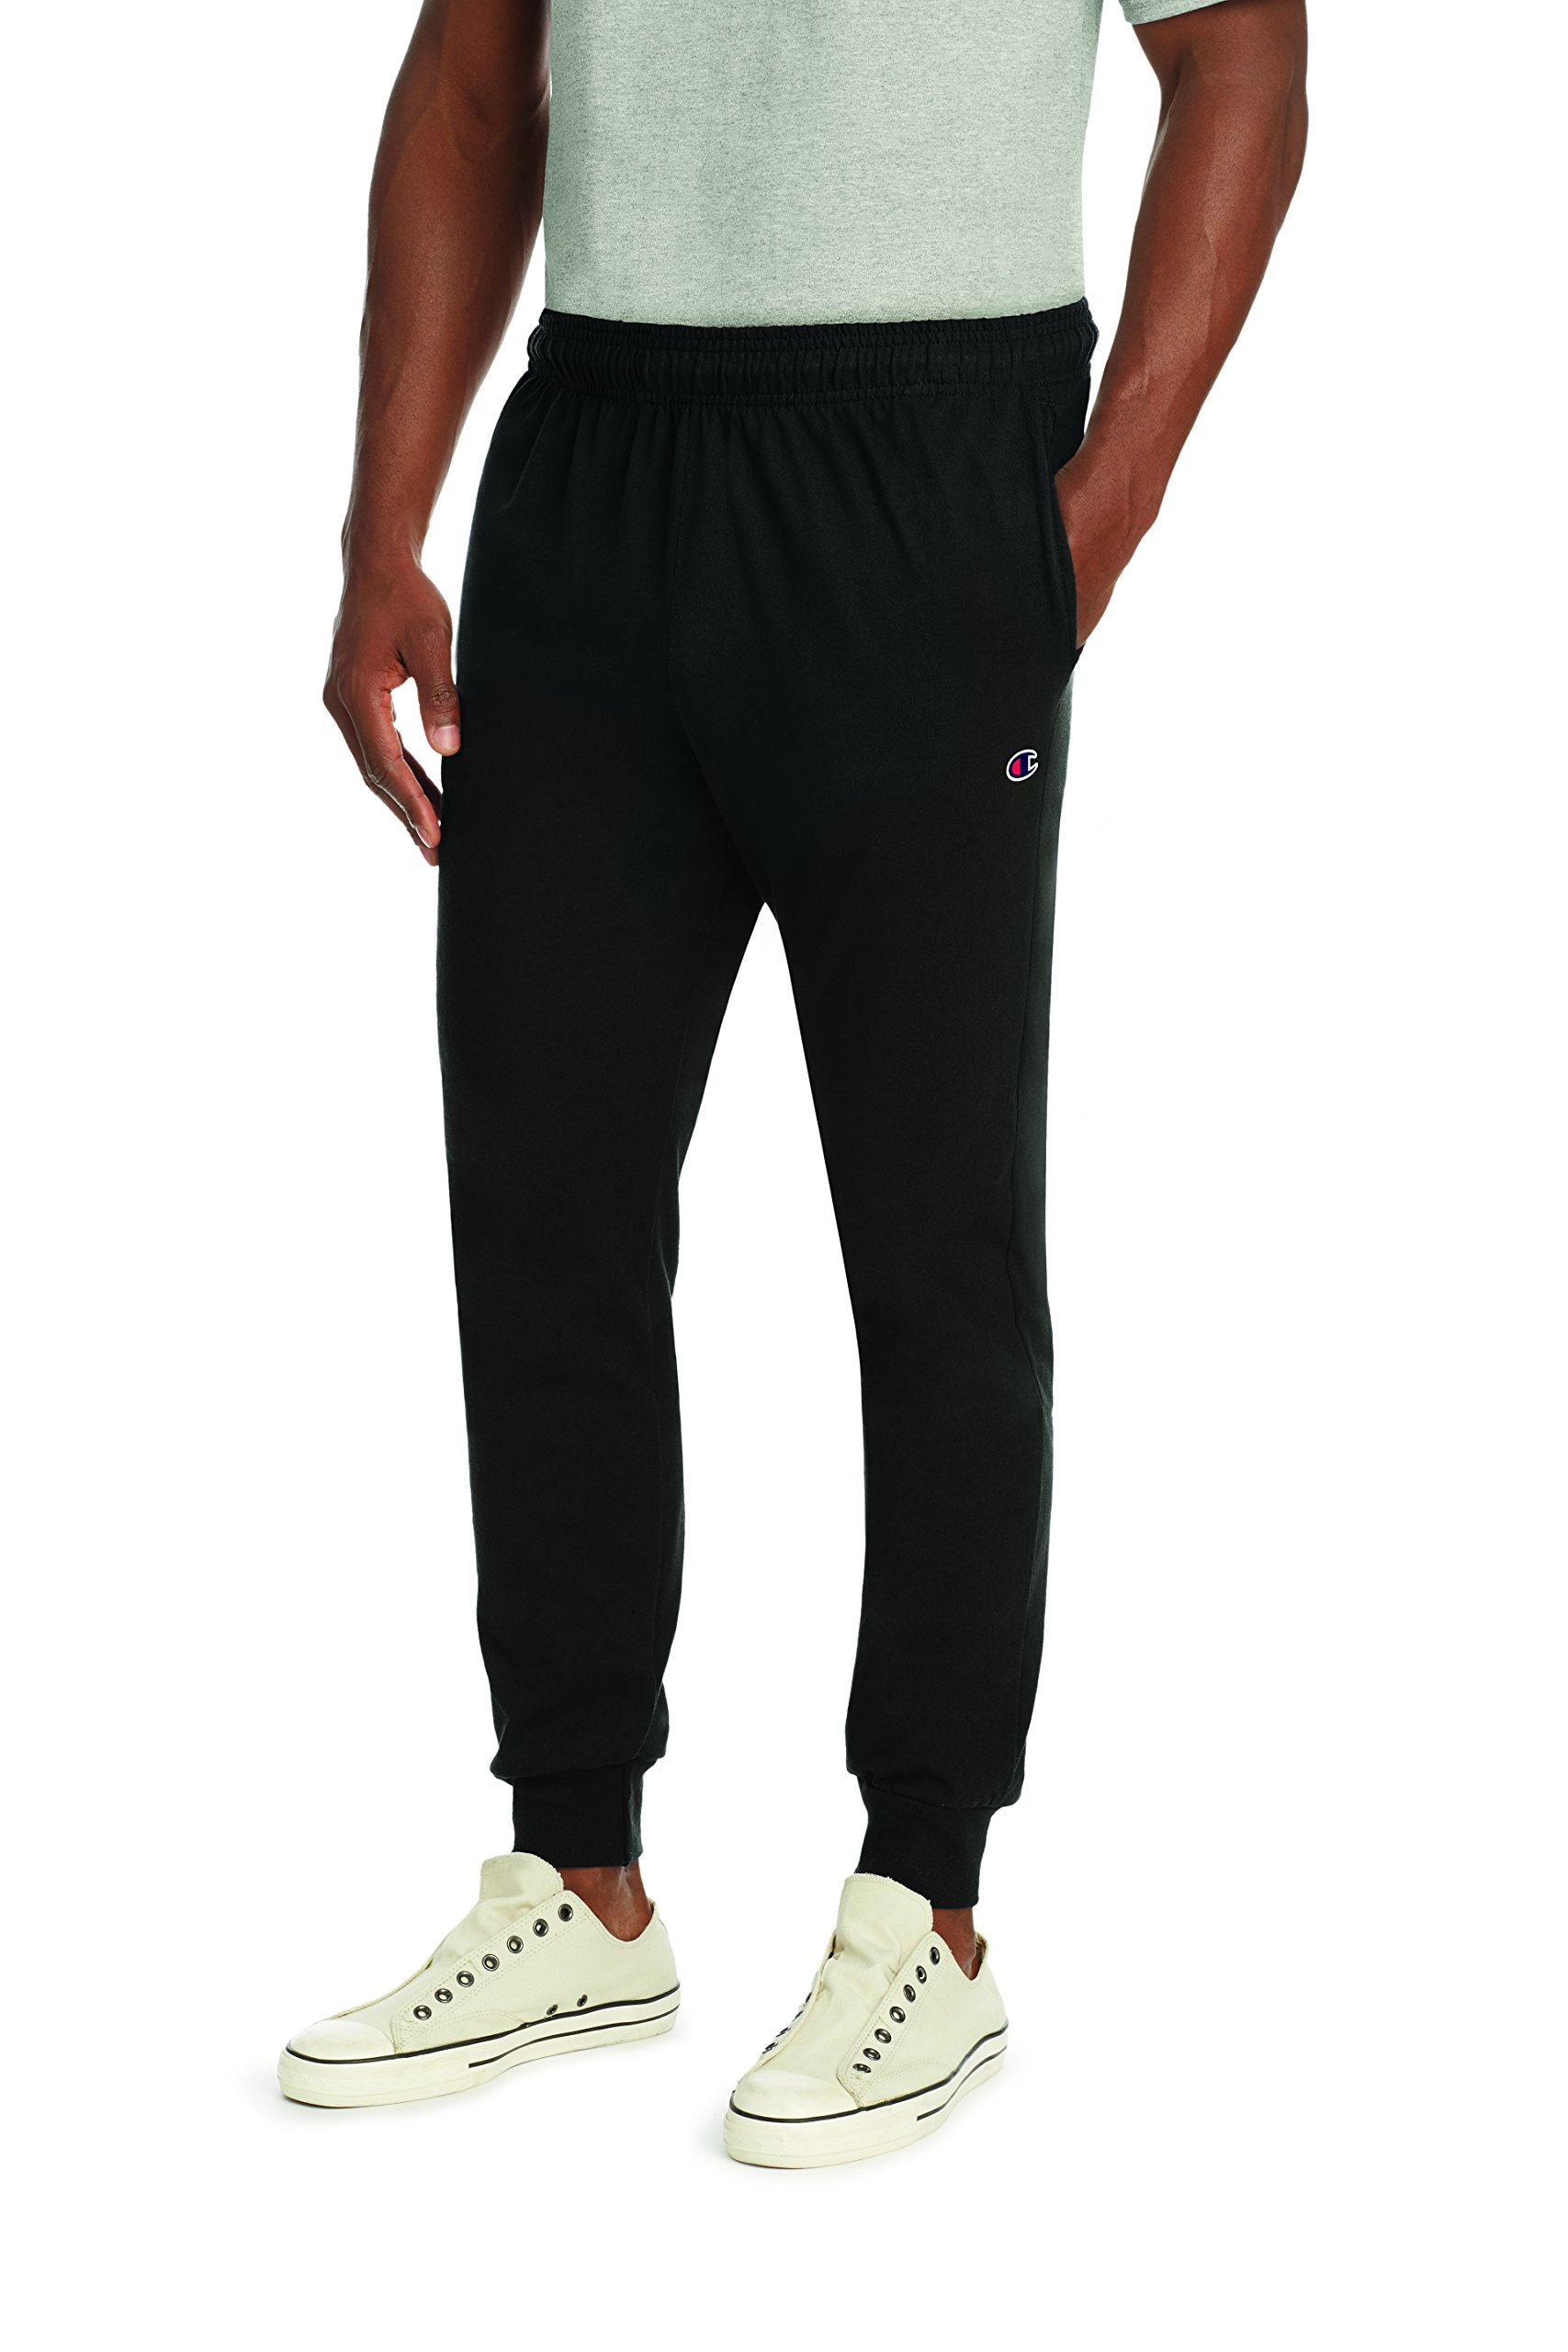 Champion Men's Jersey Jogger, Black, M by Champion